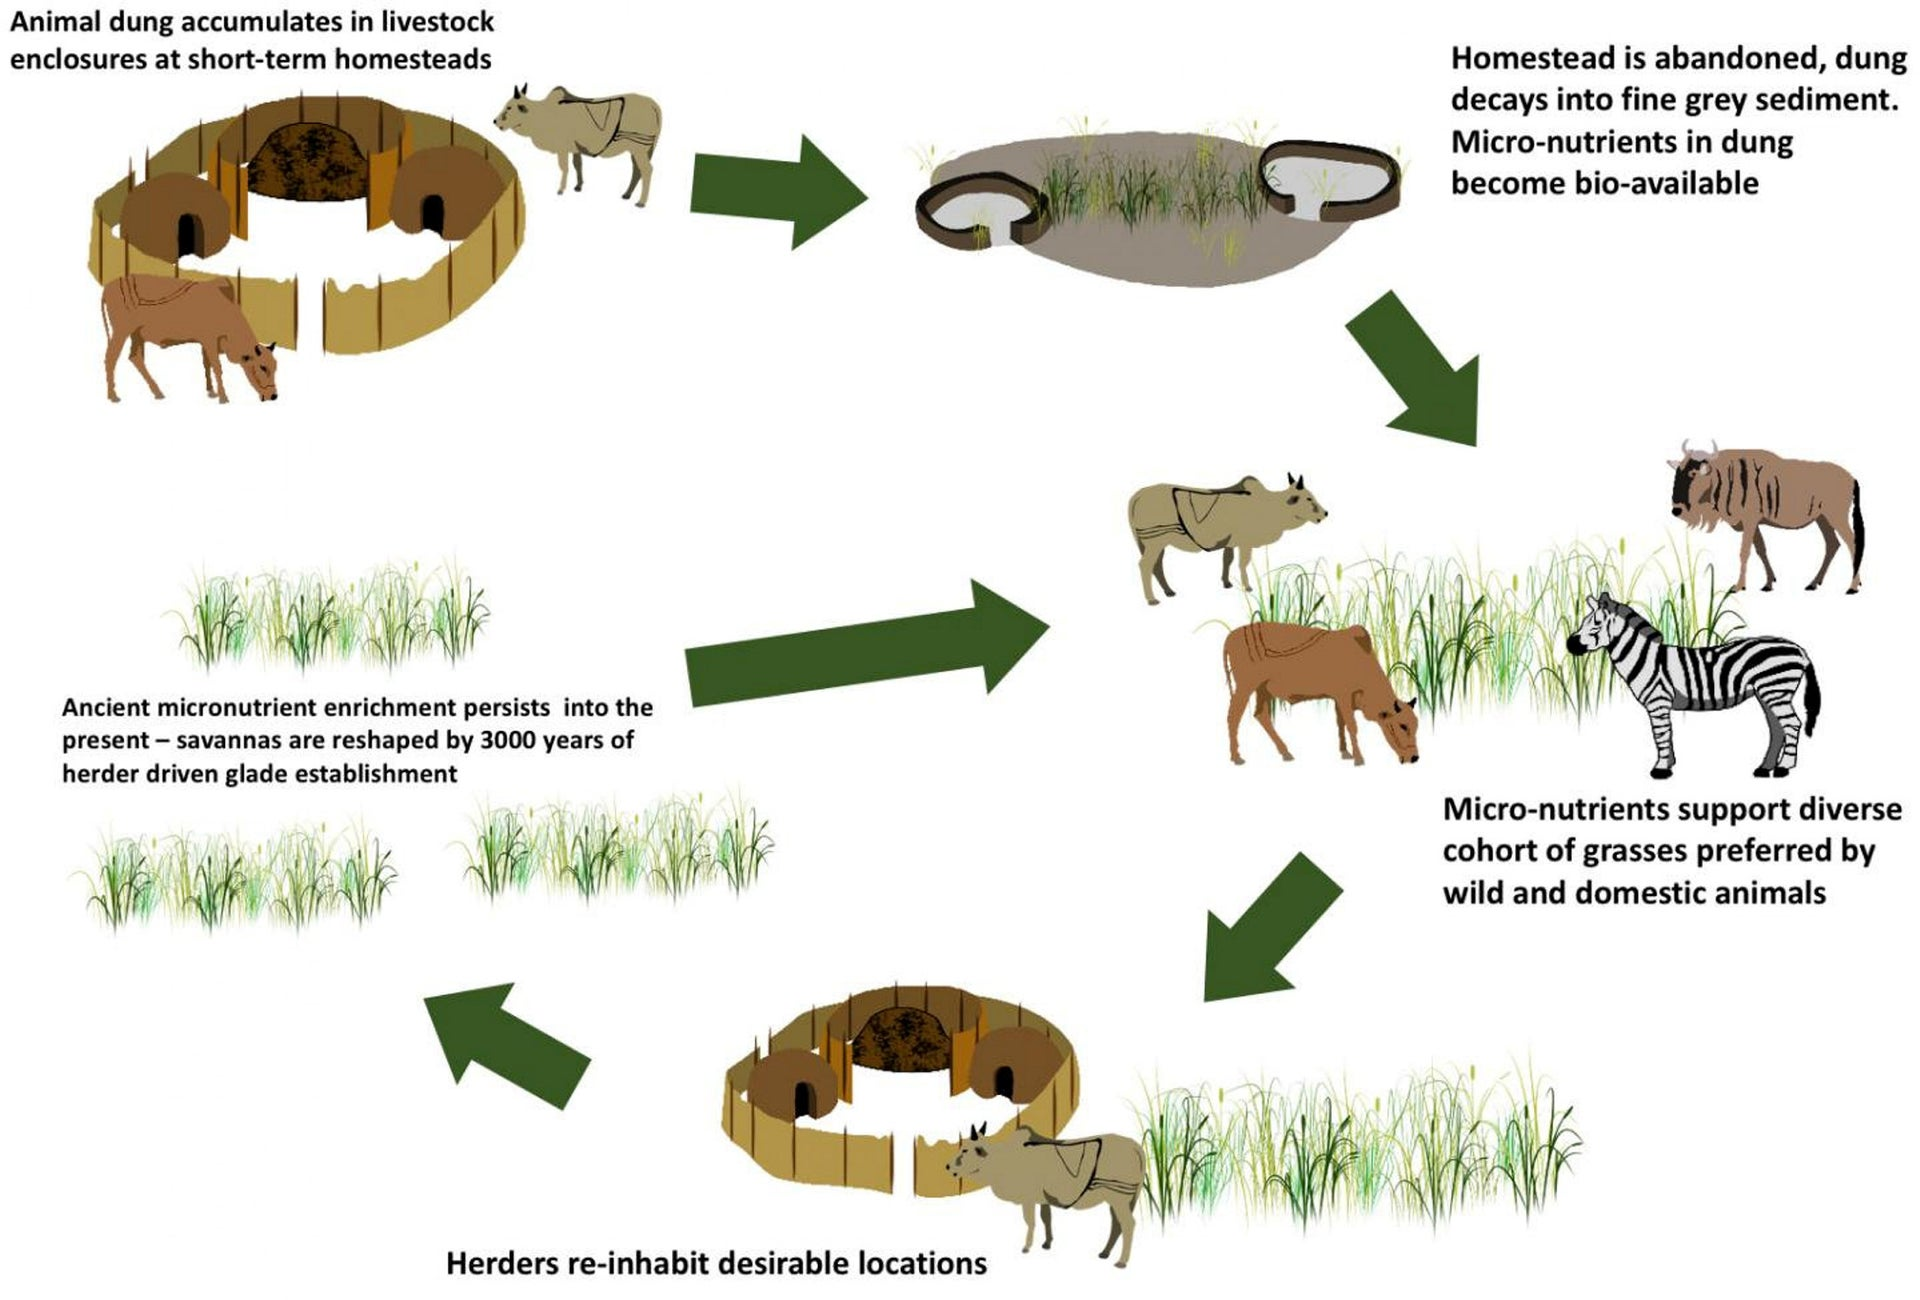 Some of Africa's most biologically diverse wildlife hotspots can trace their origins to a cycle of soil enrichment that begins with dung deposited in the livestock corrals of ancient herdsmen.